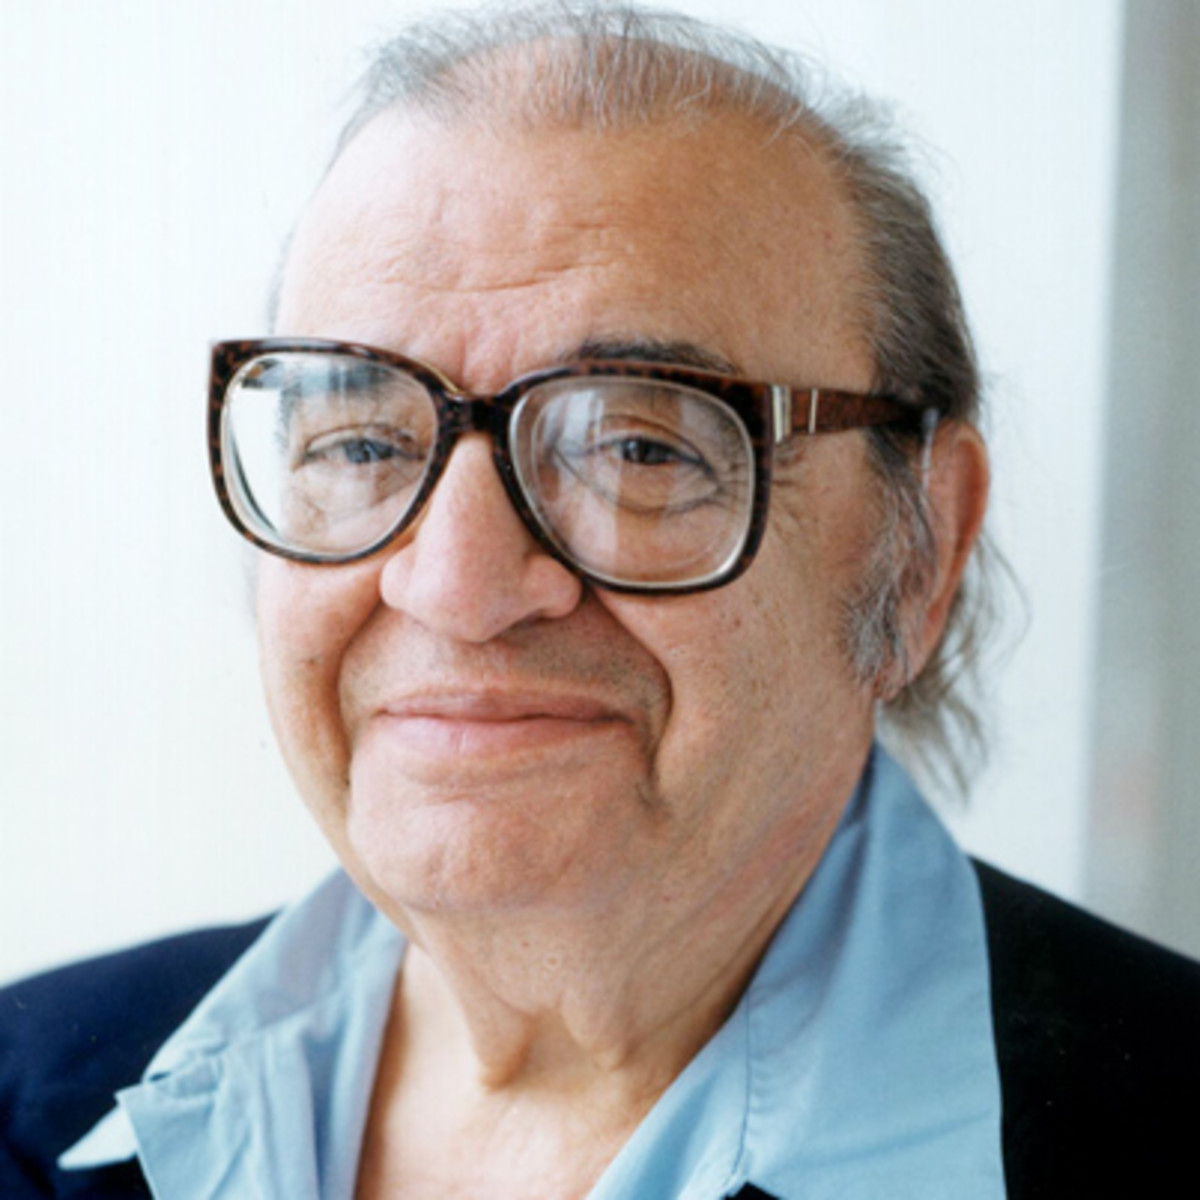 Mario Puzo, author of The Godfather (Photo: Evan Kafka/Getty Images)